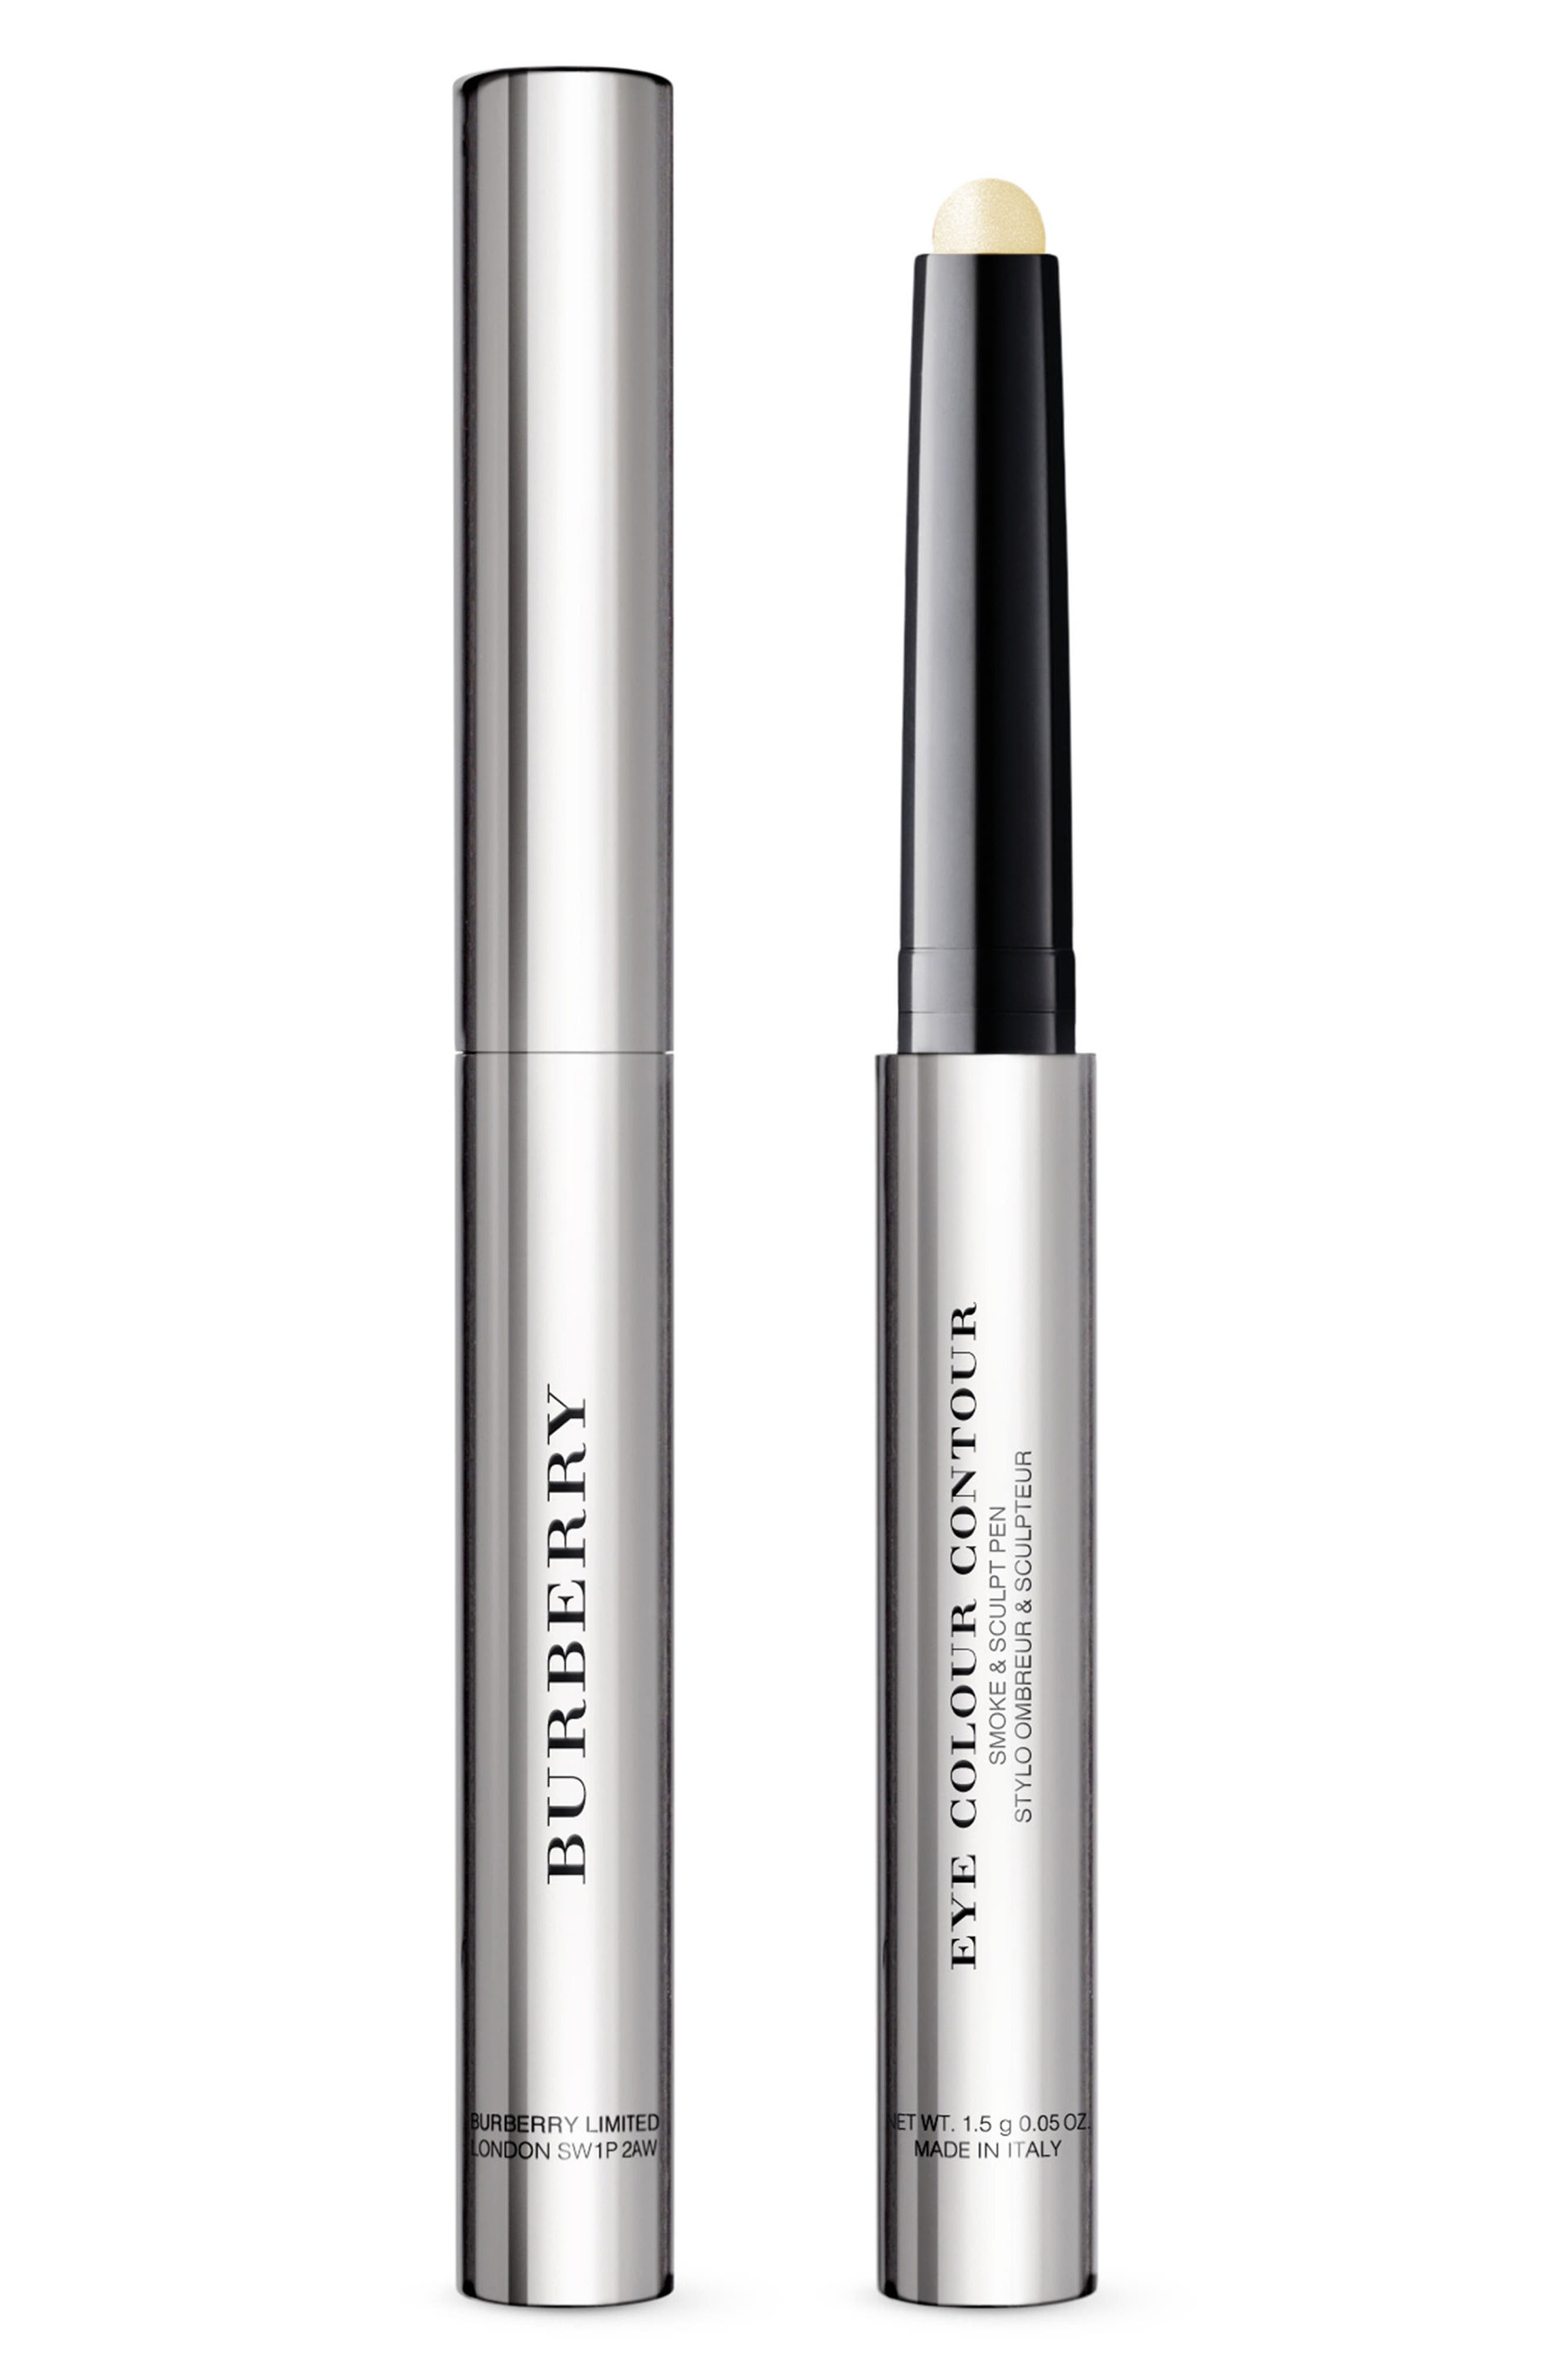 Burberry Beauty Eye Color Contour (Limited Edition)